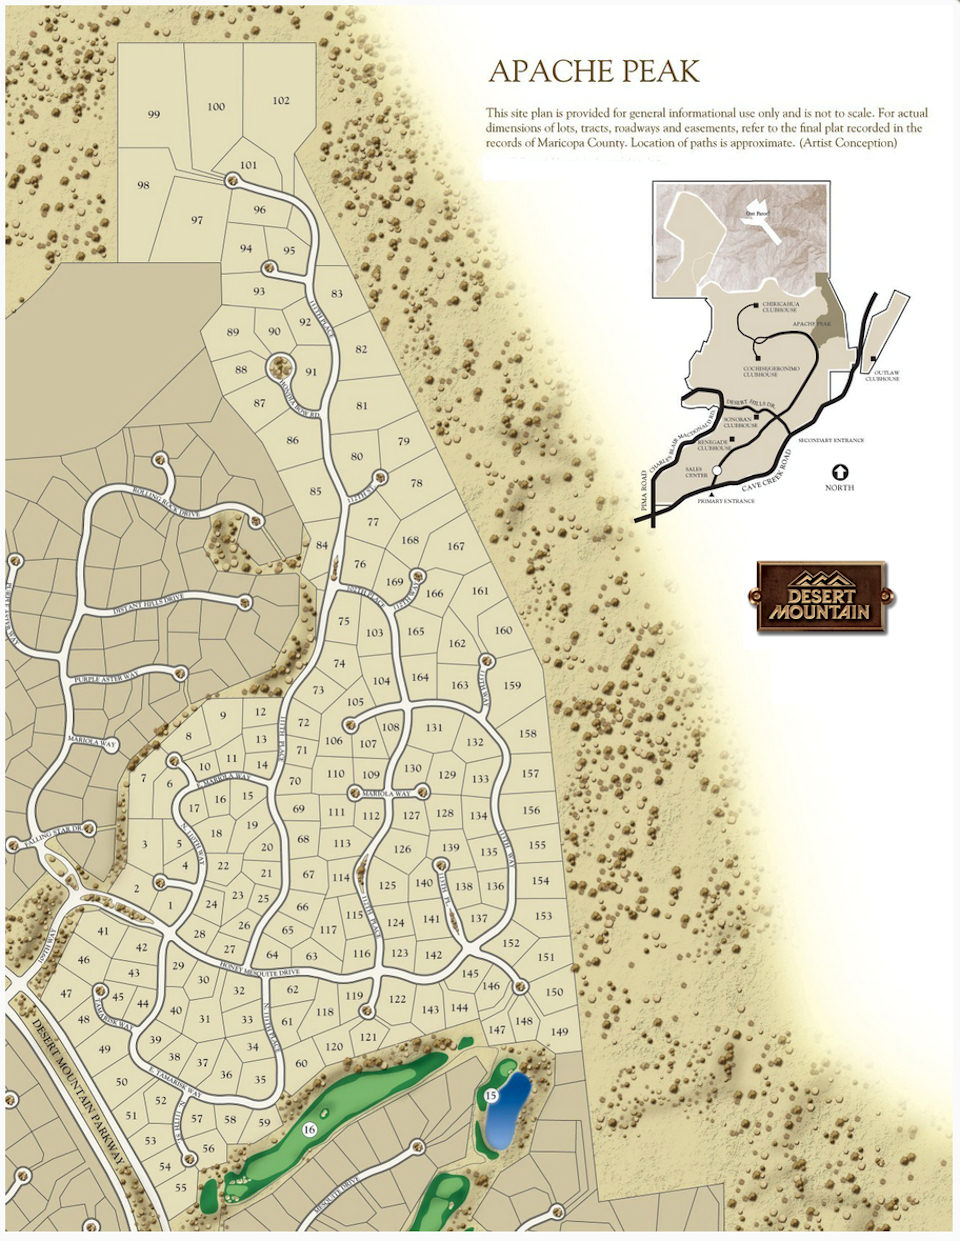 Apache Peak Map in Desert Mountain Scottsdale Arizona